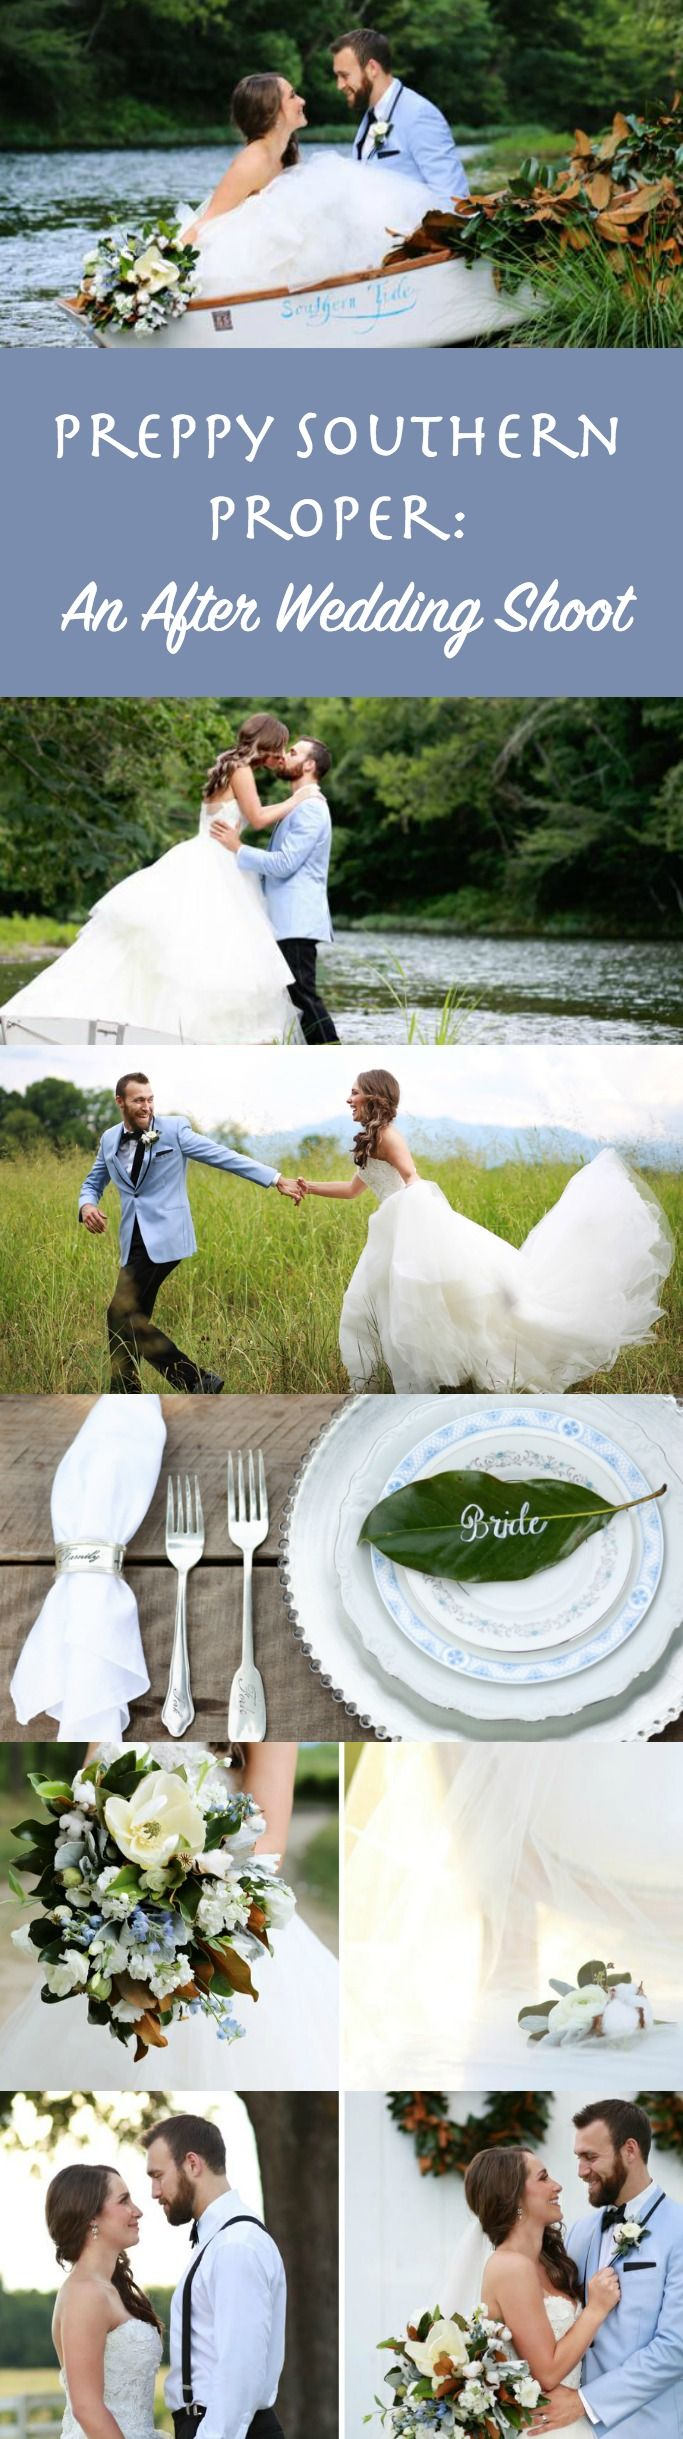 Preppy Southern Proper: An After Wedding Shoot | Sweet & Beautiful Wedding Theme Ideas. - Inspired Bride